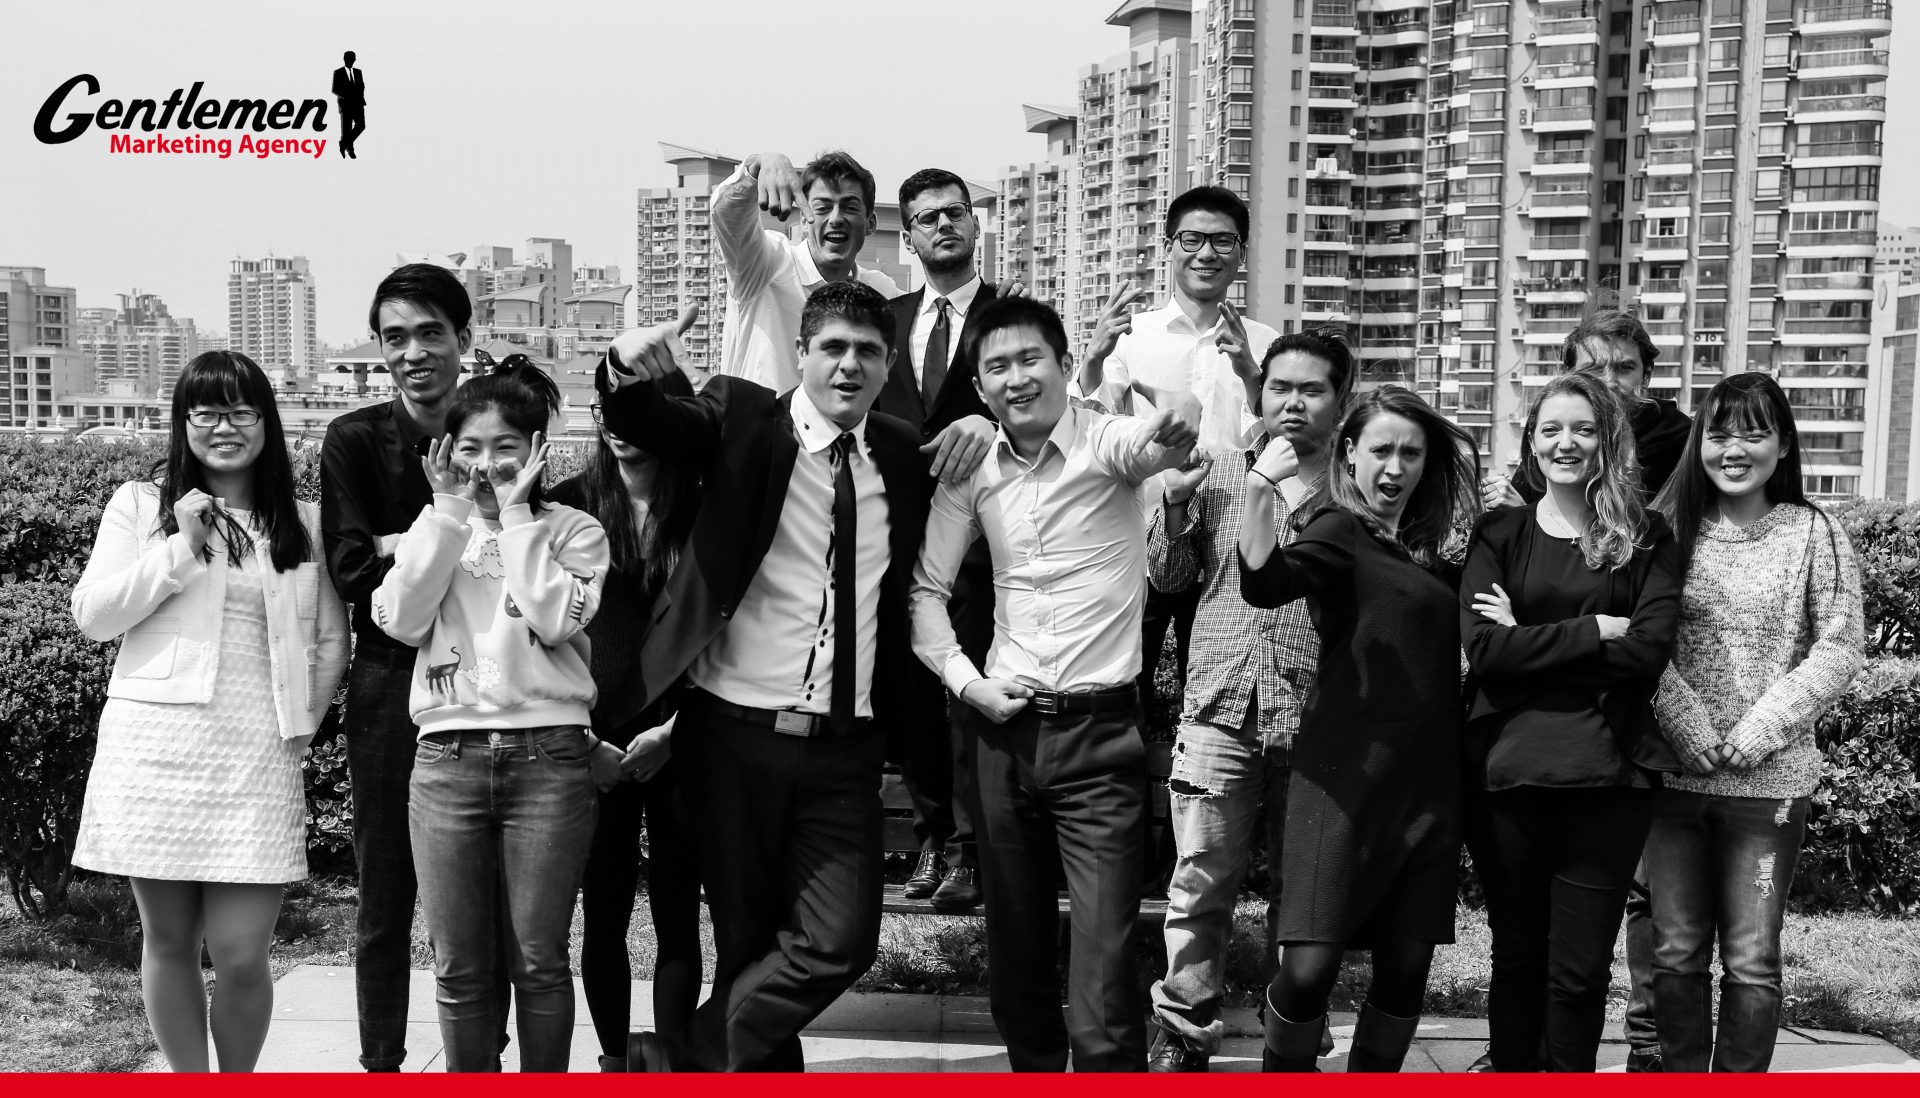 Gentlemen Marketing Agency is expanding and  open  new Workplaces in China